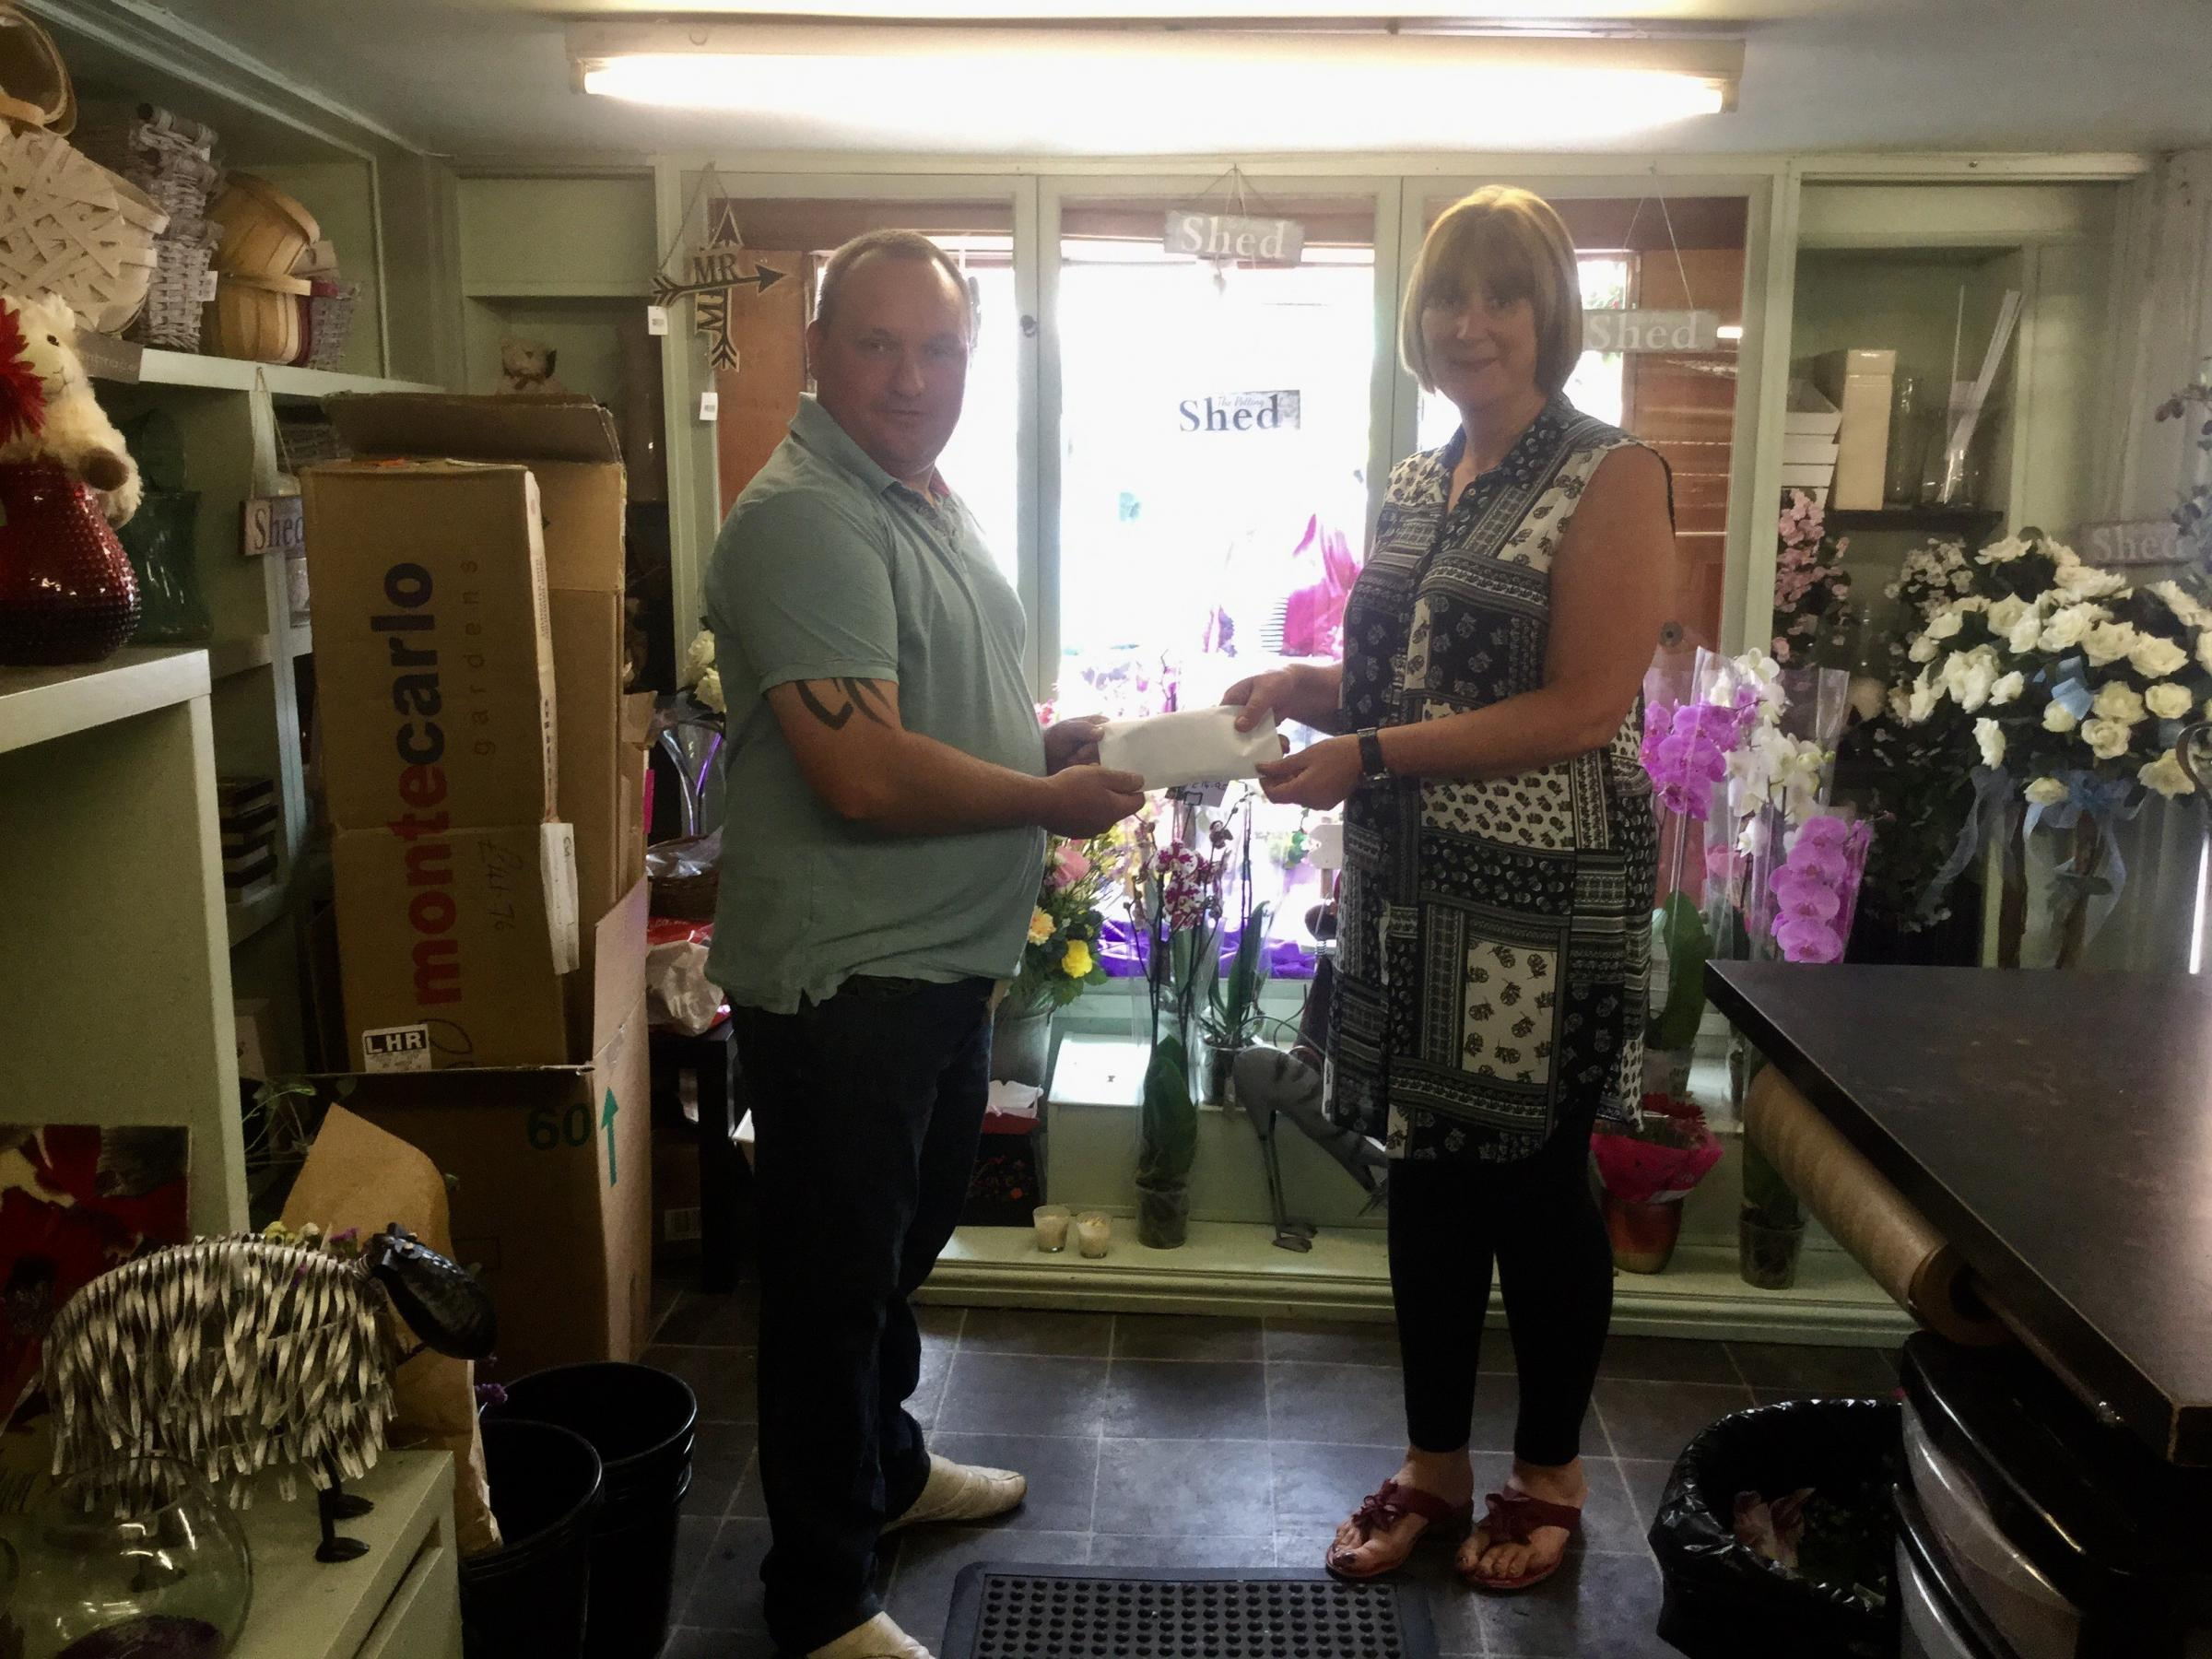 Dan Carriss handing a donation of £750 pounds to Rebecca Render, chairman of the Malton Hospital League of Friends